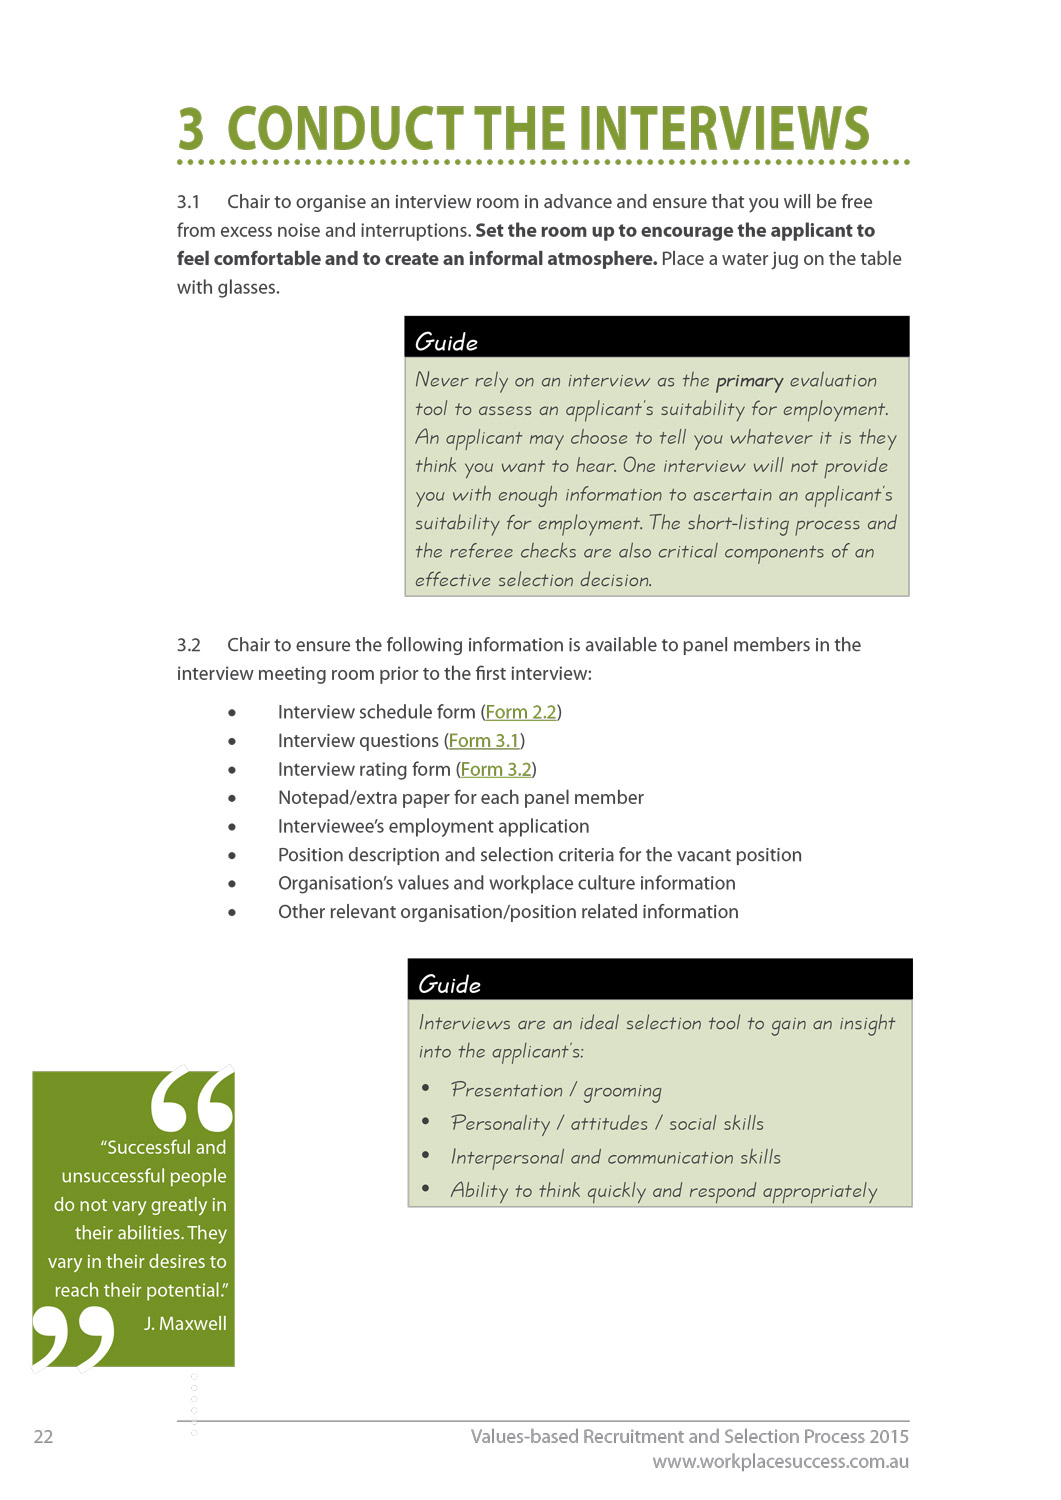 values based recruitment selection toolkit workplace success values based recruitment and selection toolkit